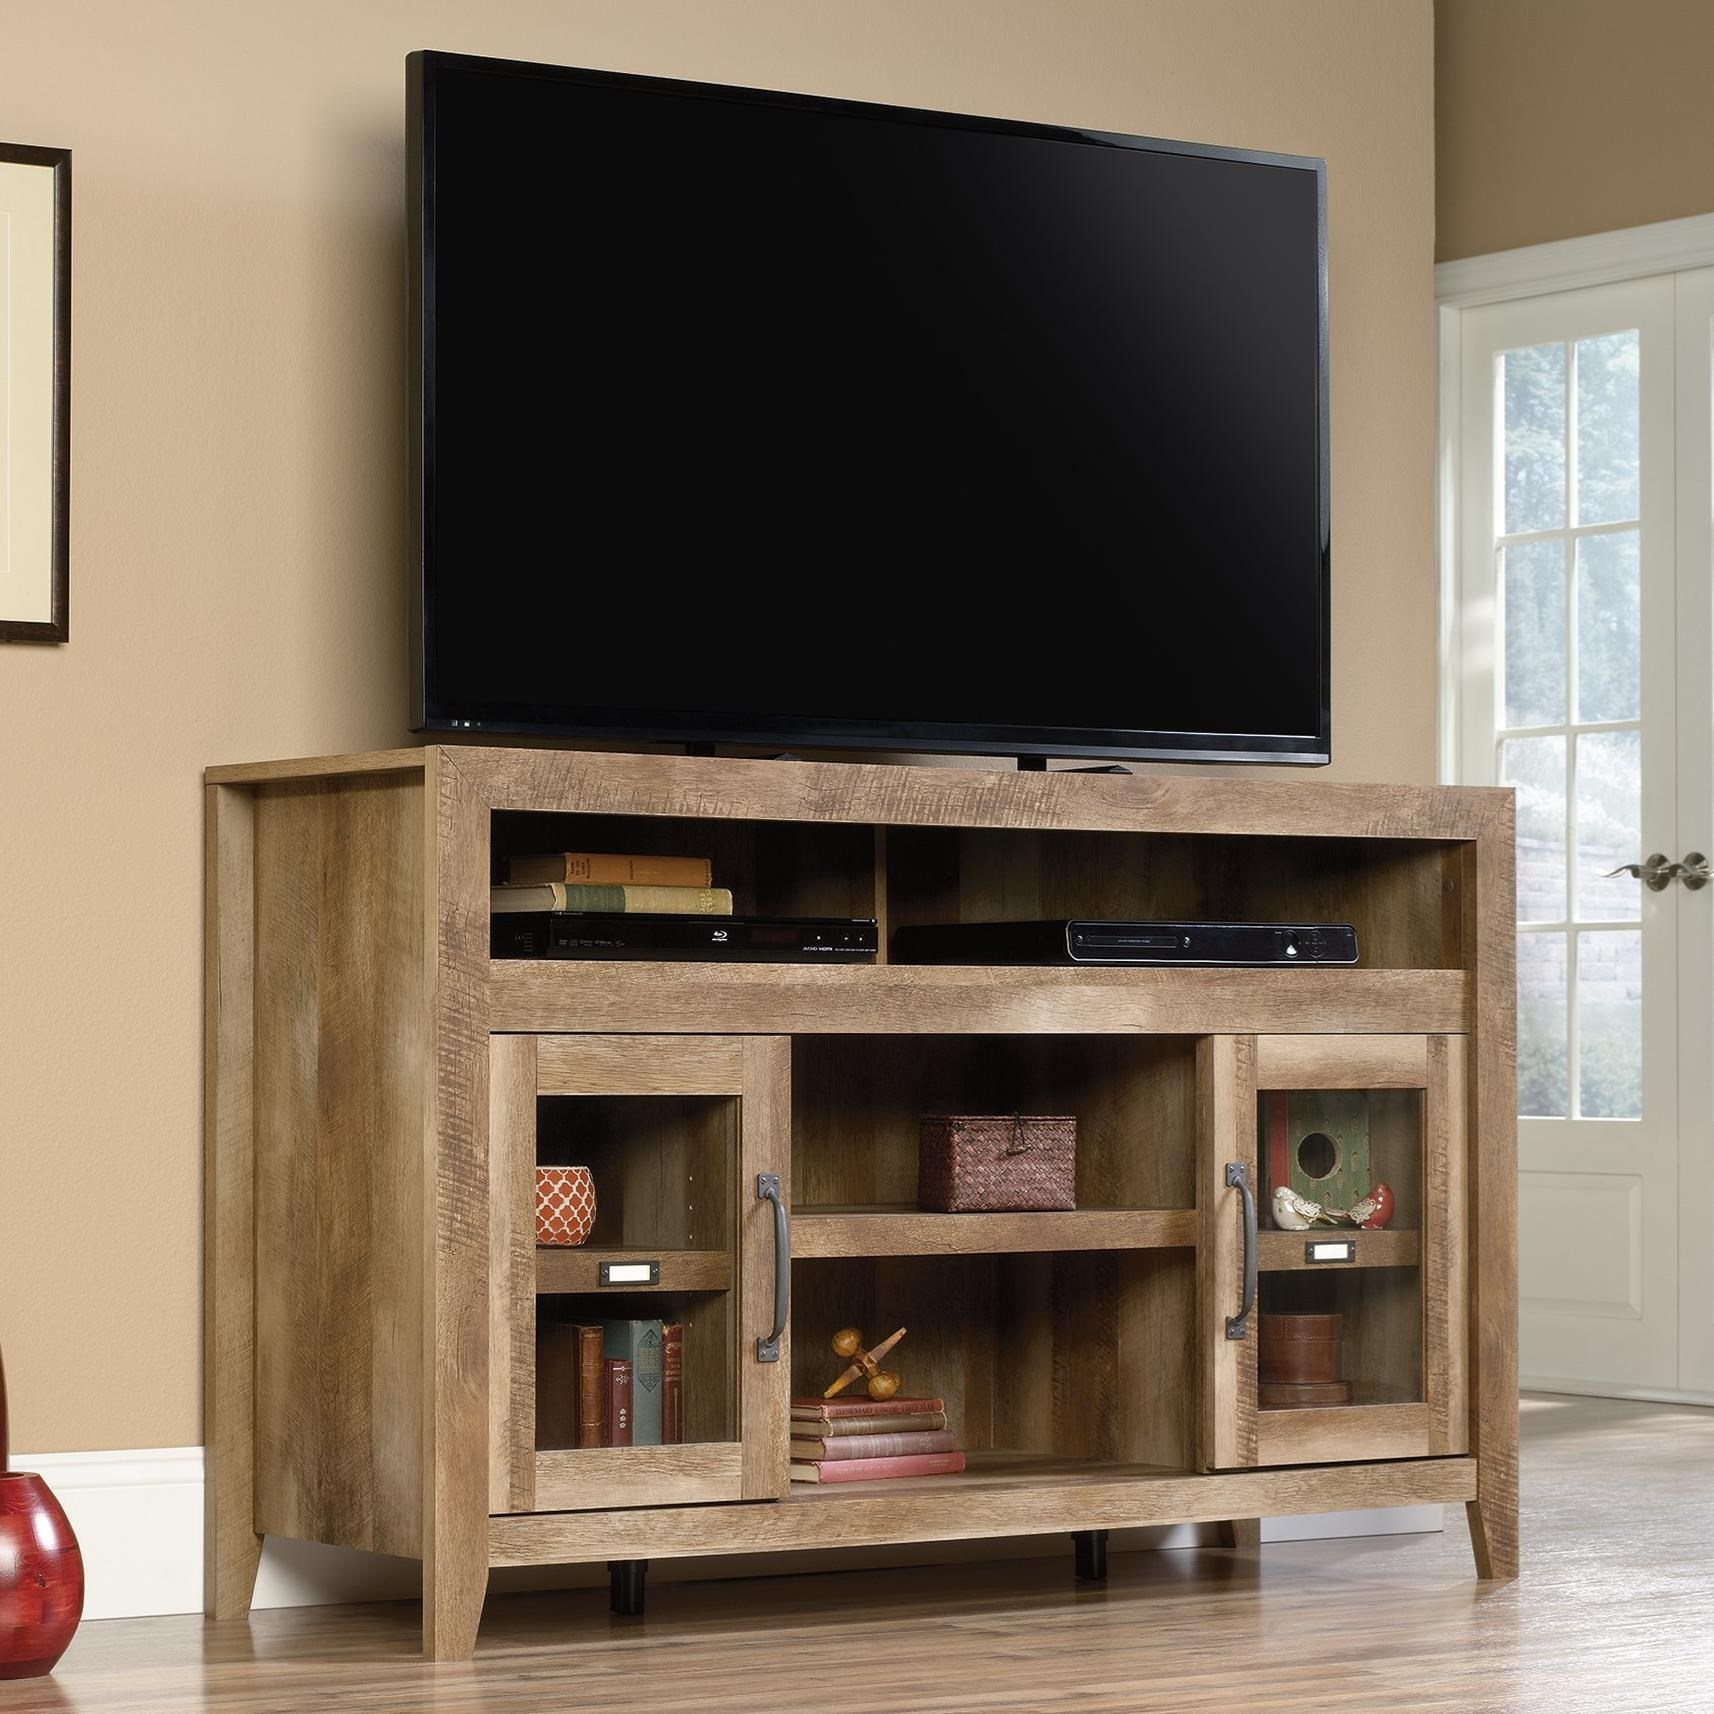 Sauder Dakota Pass 419119 Rustic Finish Entertainment